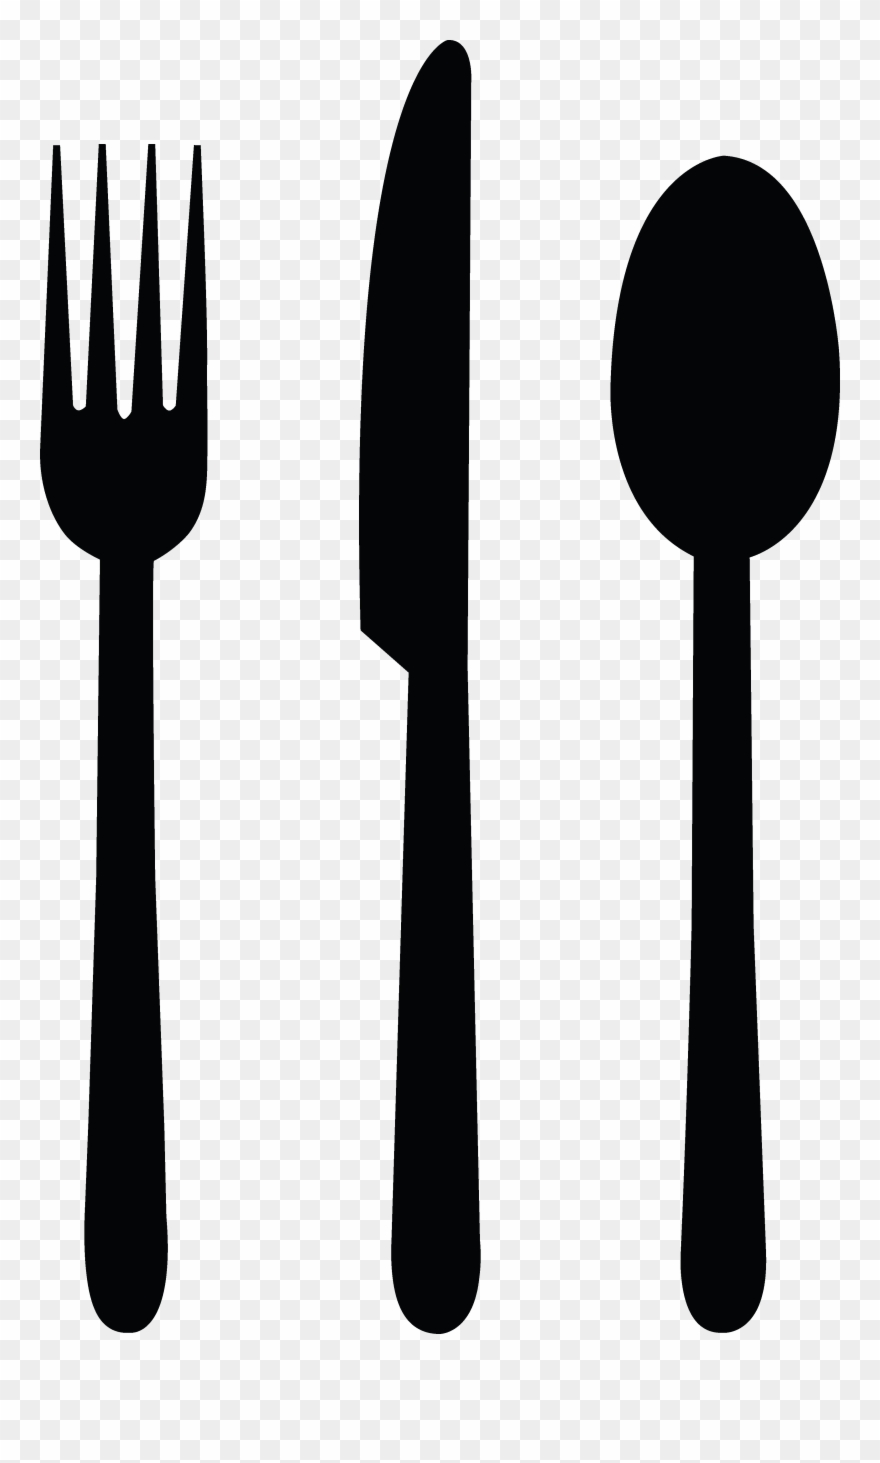 Fork knife spoon clipart black and white